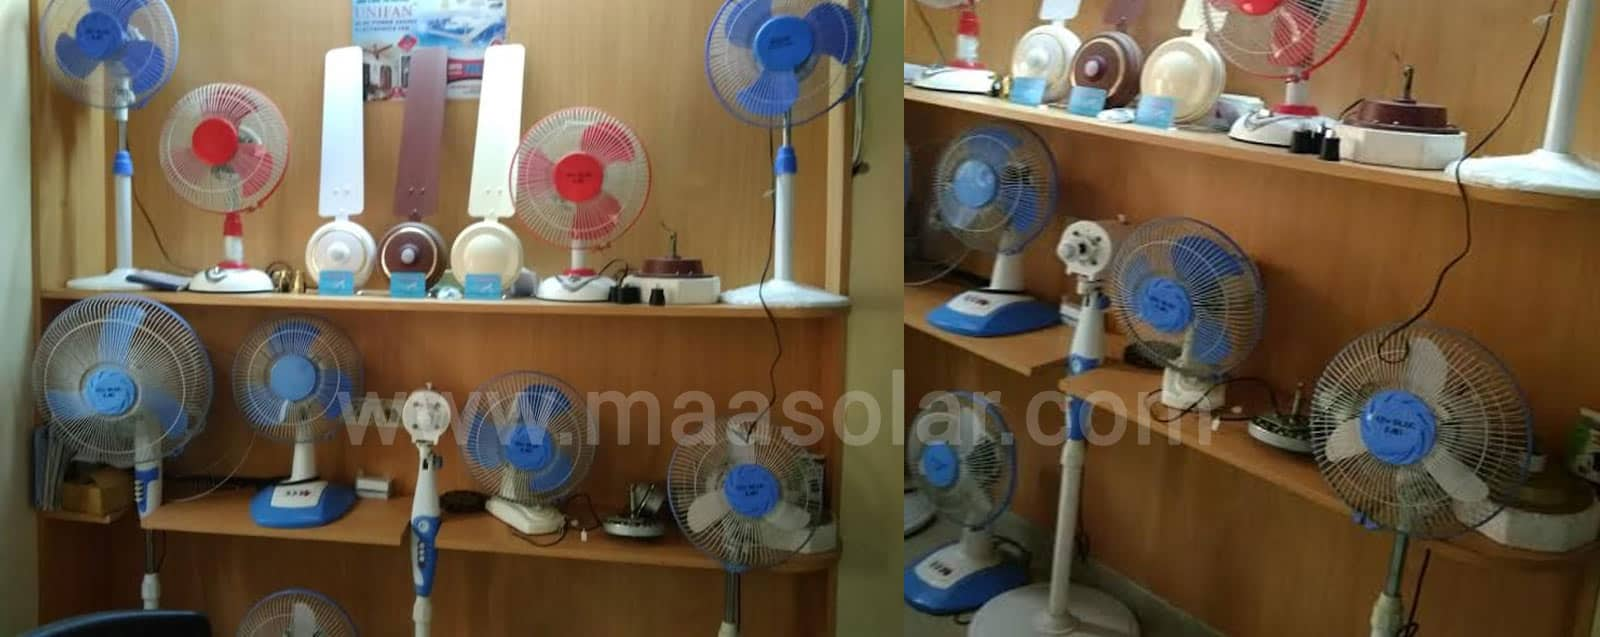 BLDC Ceiling Fan, Ceiling Fan, Manufacturers, Price, Suppliers, India